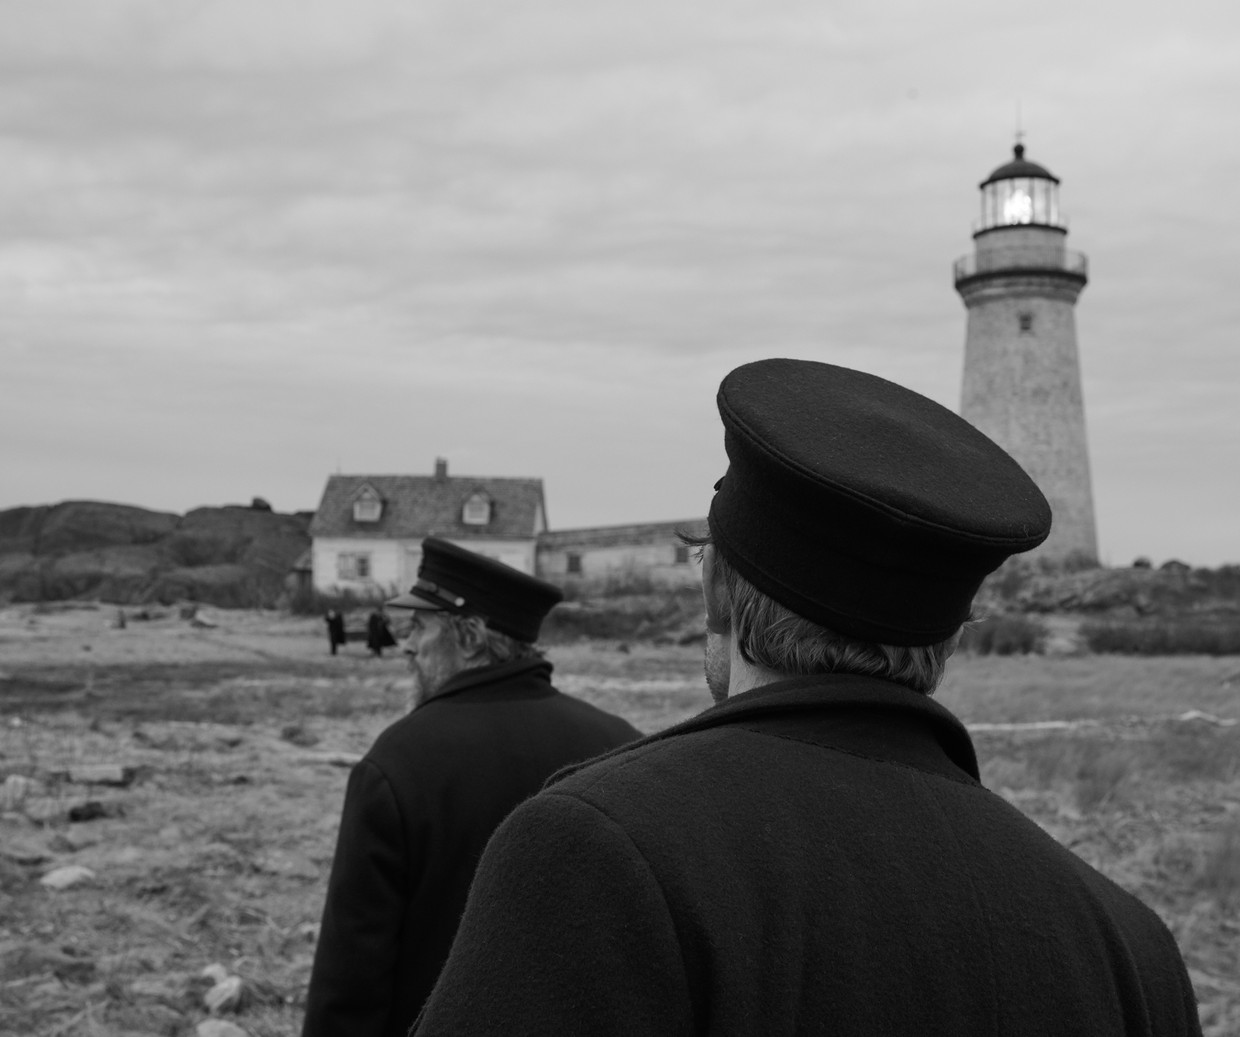 Willem Dafoe (links) en Robert Pattison op het rotsige eiland van The Lighthouse.